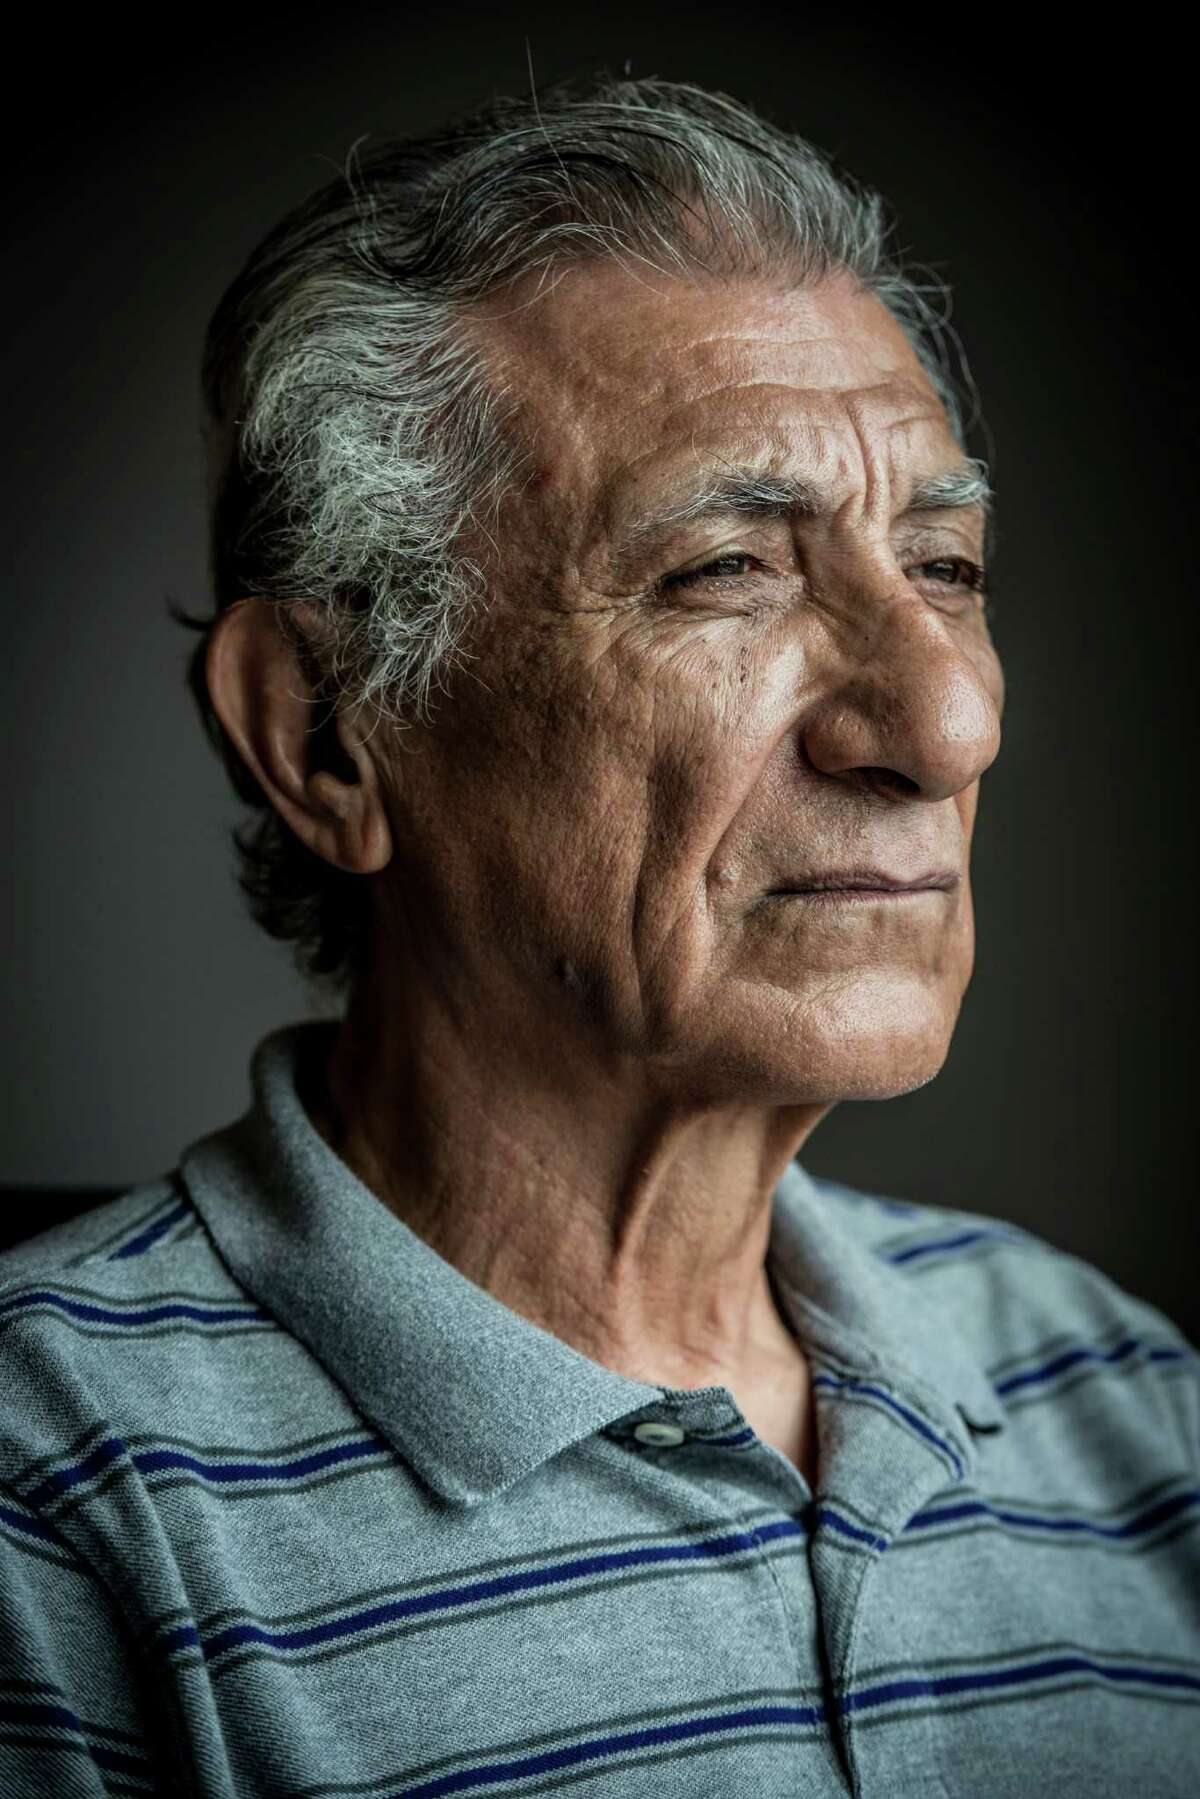 Manuel Garza, 64, was a 1969 graduate of Edgewood High School and participated in the student actions in San Antonio during the spring of 1968, joining a walkout on May 16 to protest dirty school buildings, poor funding and inadequate resources. Some changes that resulted were immediate - a member of the band, Garza remembers being taken to a local music store with his new band director and asked to pick out new instruments and uniforms.